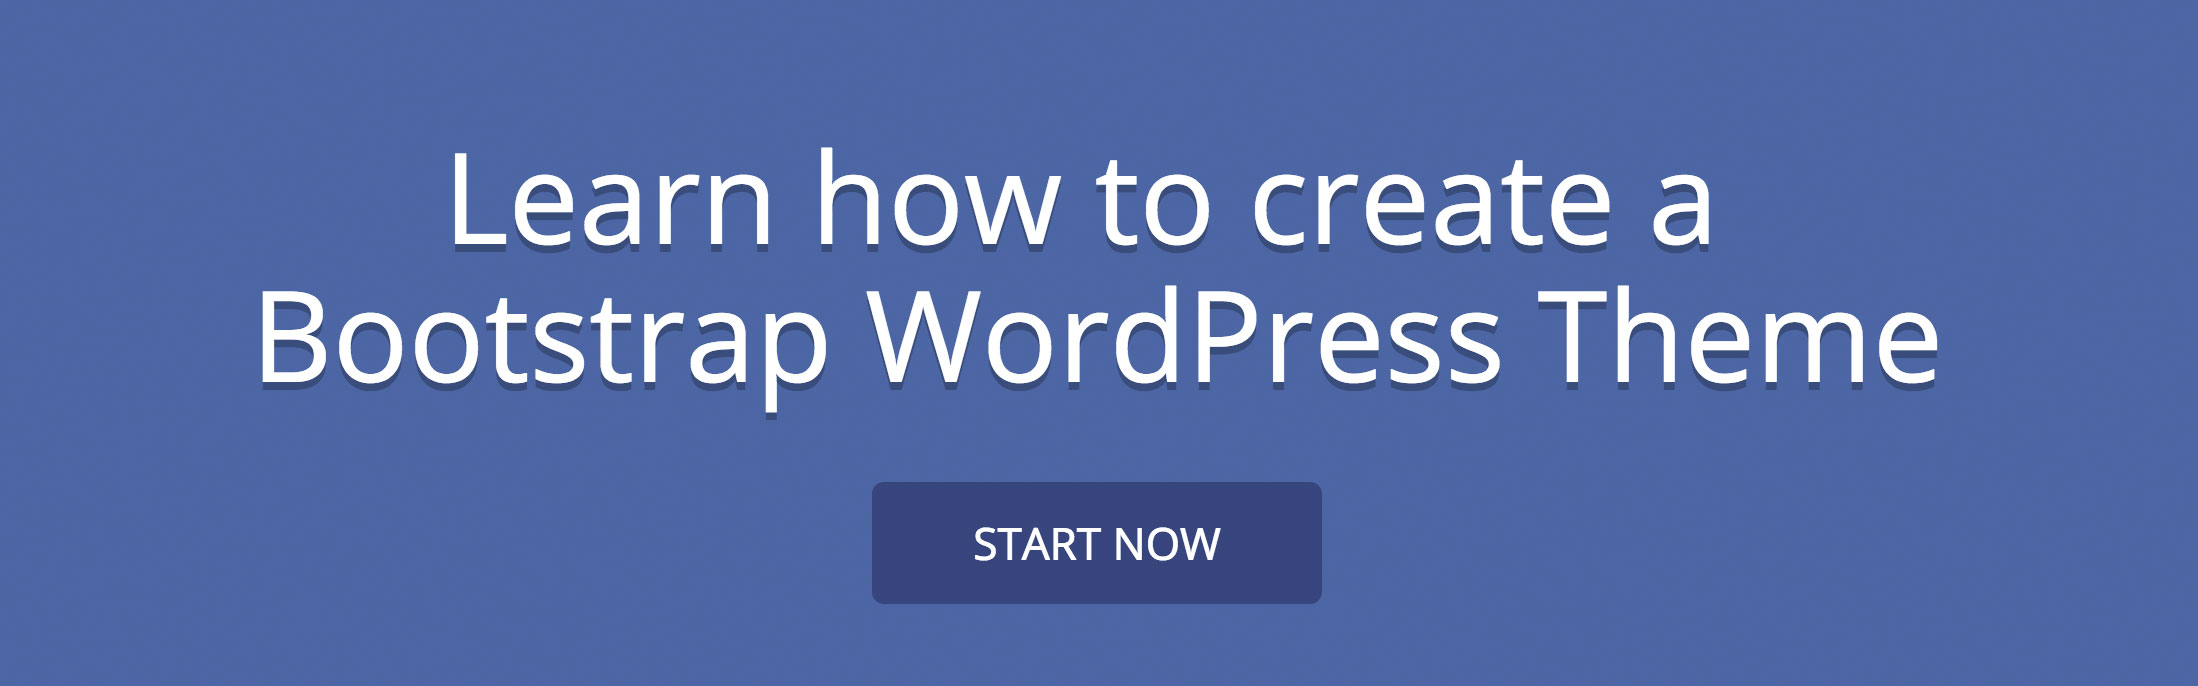 Create Bootstrap WordPress Theme